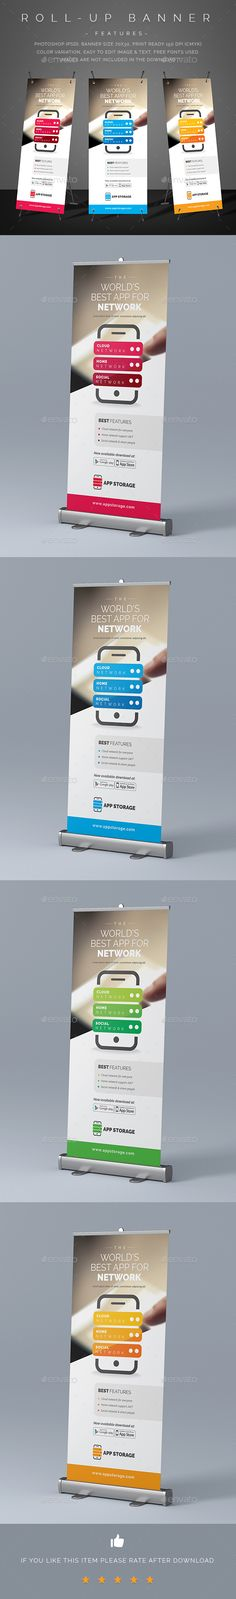 Mobile App Promotion Roll-Up Banner Template PSD